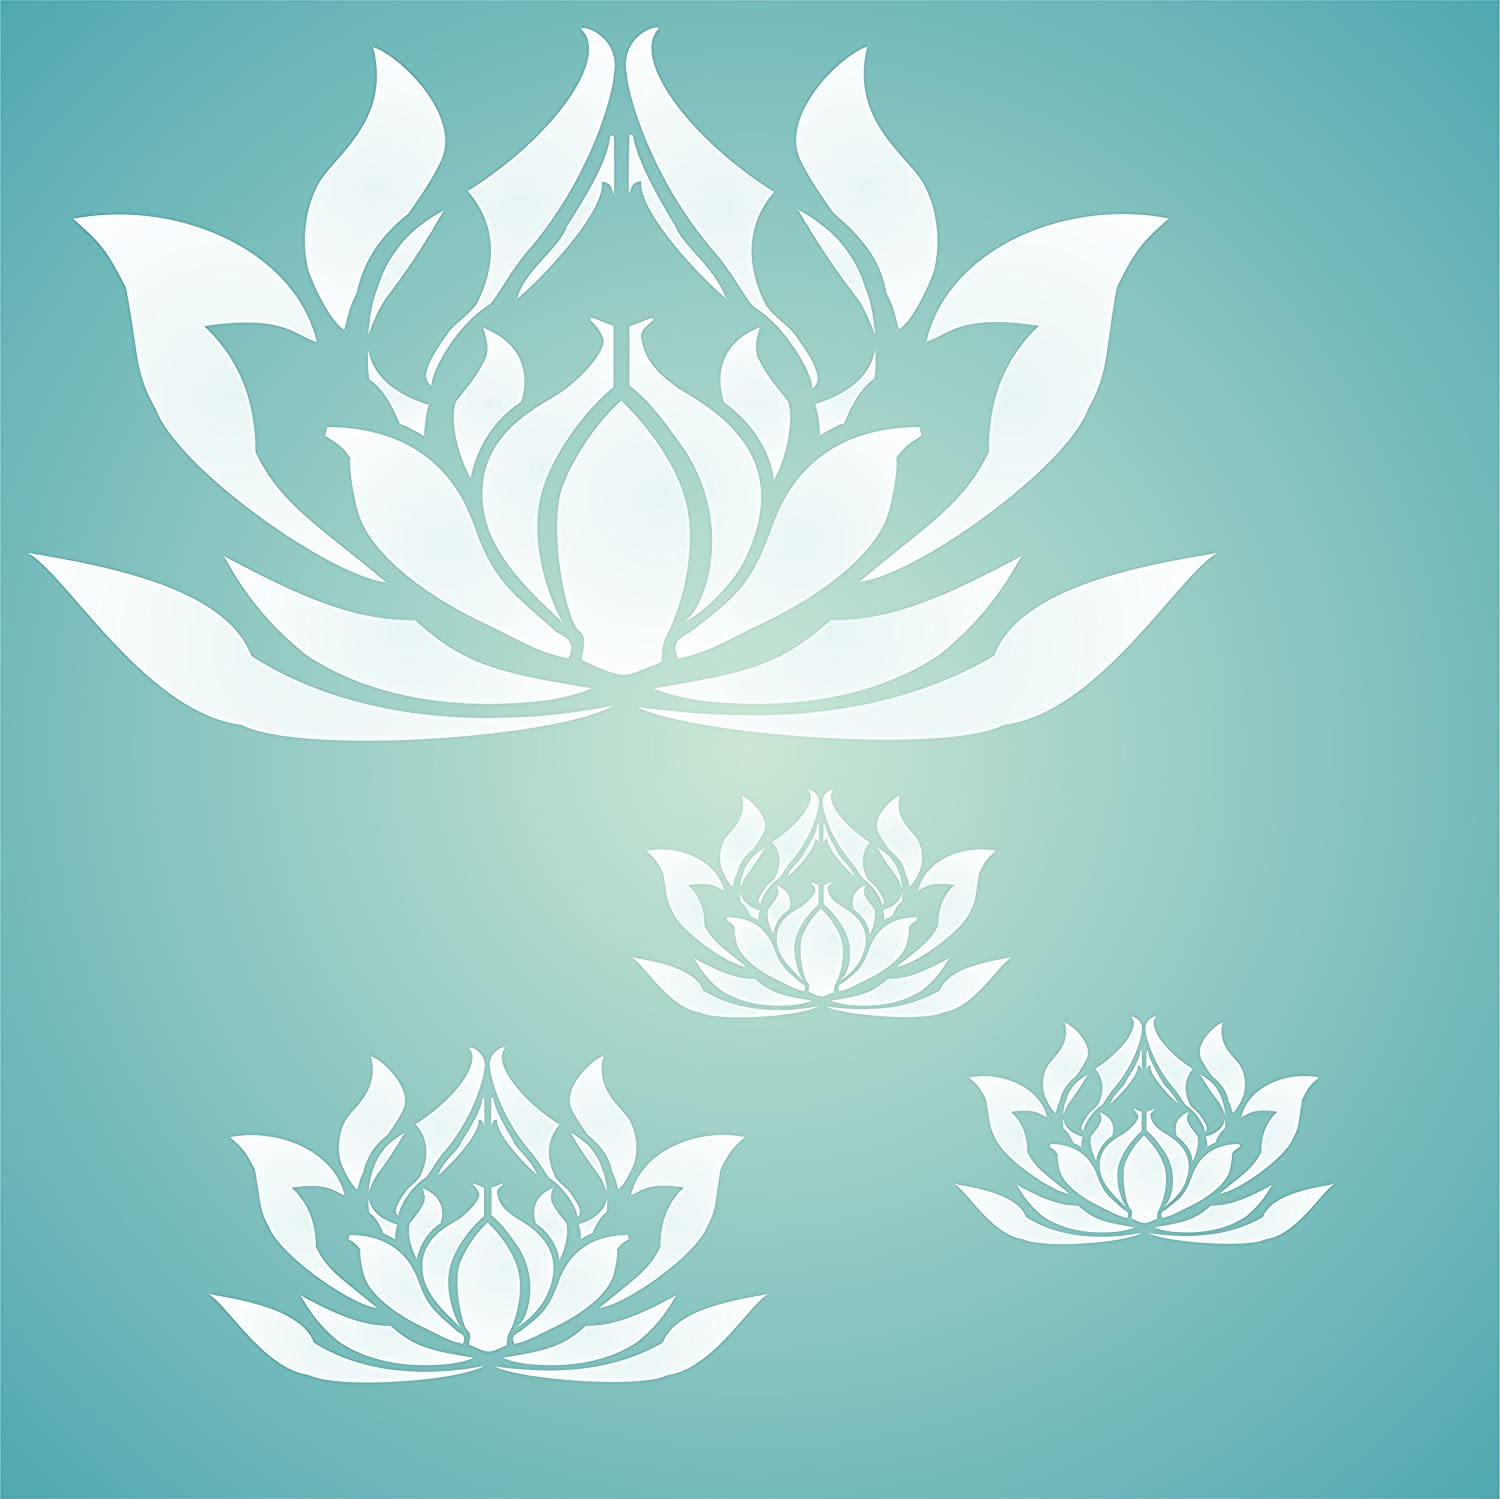 Amazon lotus flower stencil size 5w x 3h reusable wall amazon lotus flower stencil size 5w x 3h reusable wall stencils for painting best quality lotus blossom ideas use on walls floors fabrics izmirmasajfo Choice Image